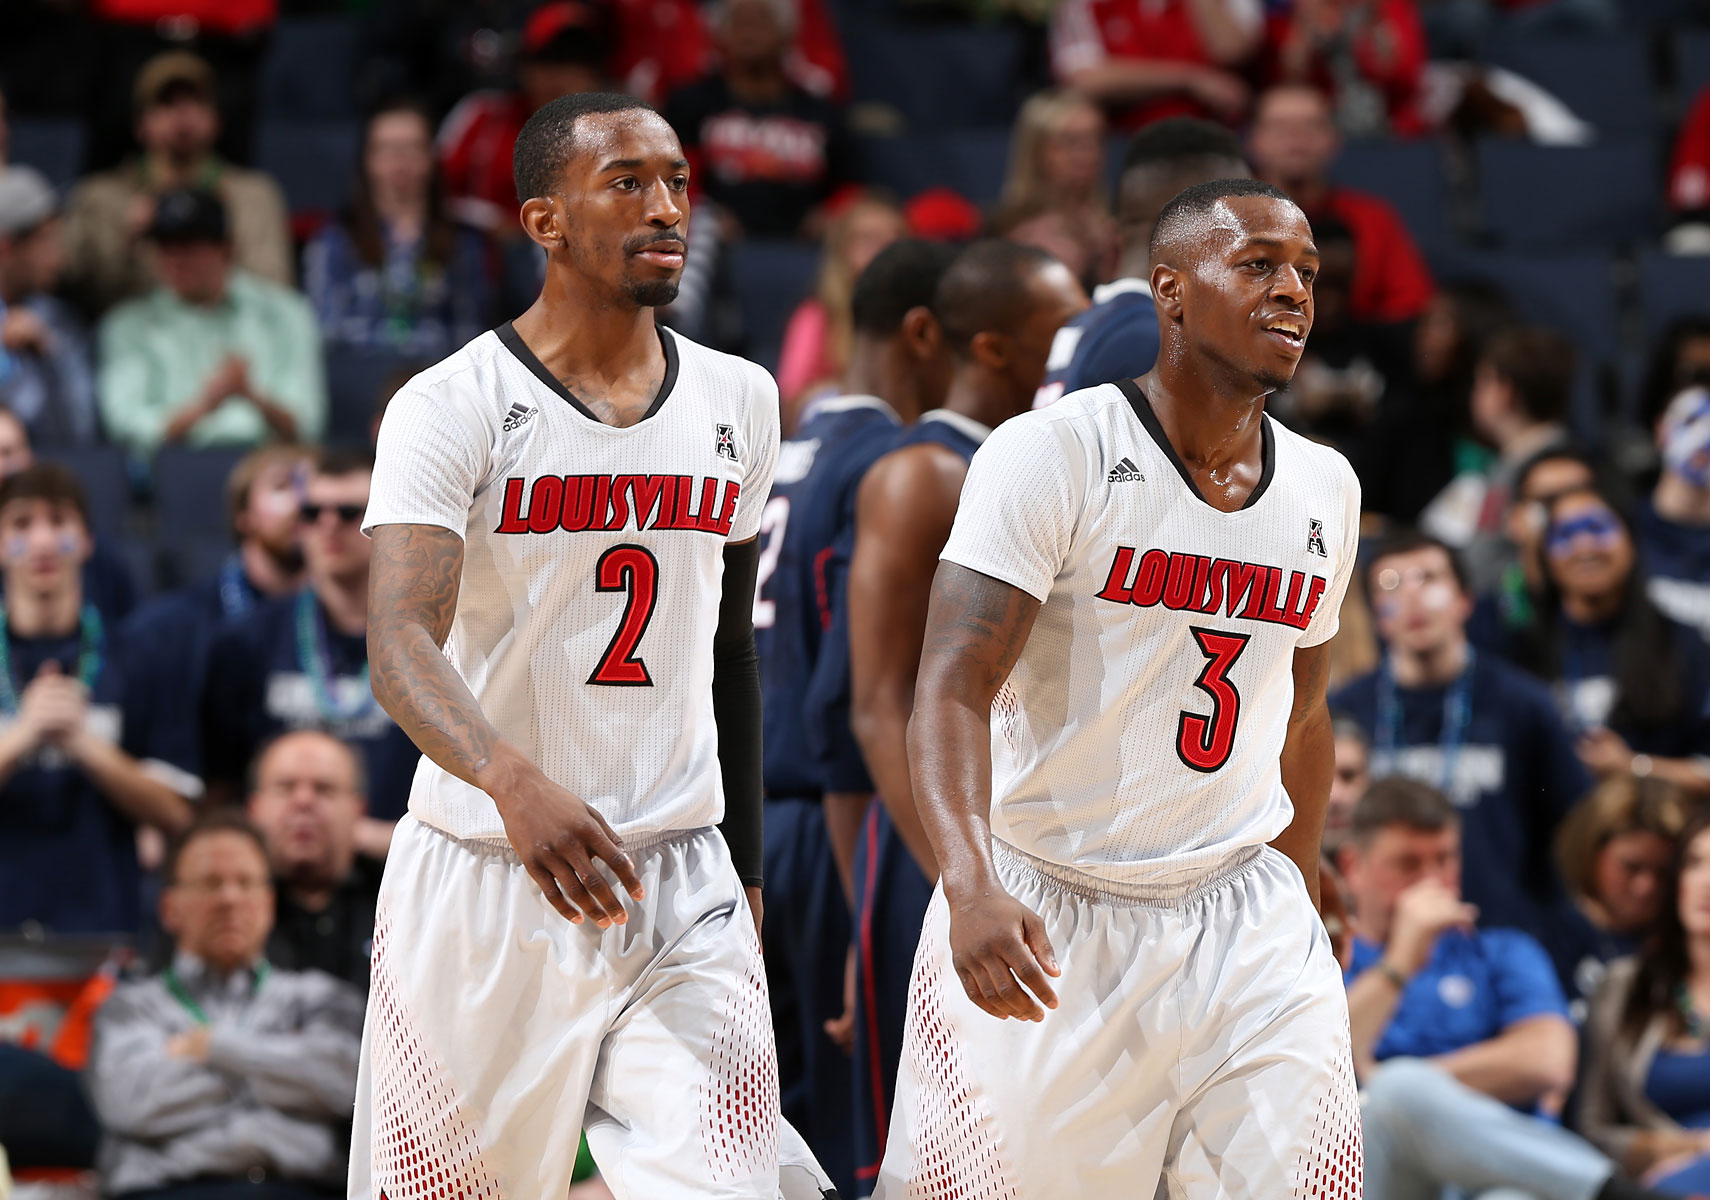 From left: Russ Smith #2 and Chris Jones #3 of the Louisville Cardinals during the Championship of the American Athletic Conference Tournament at FedExForum on March 15, 2014 in Memphis.